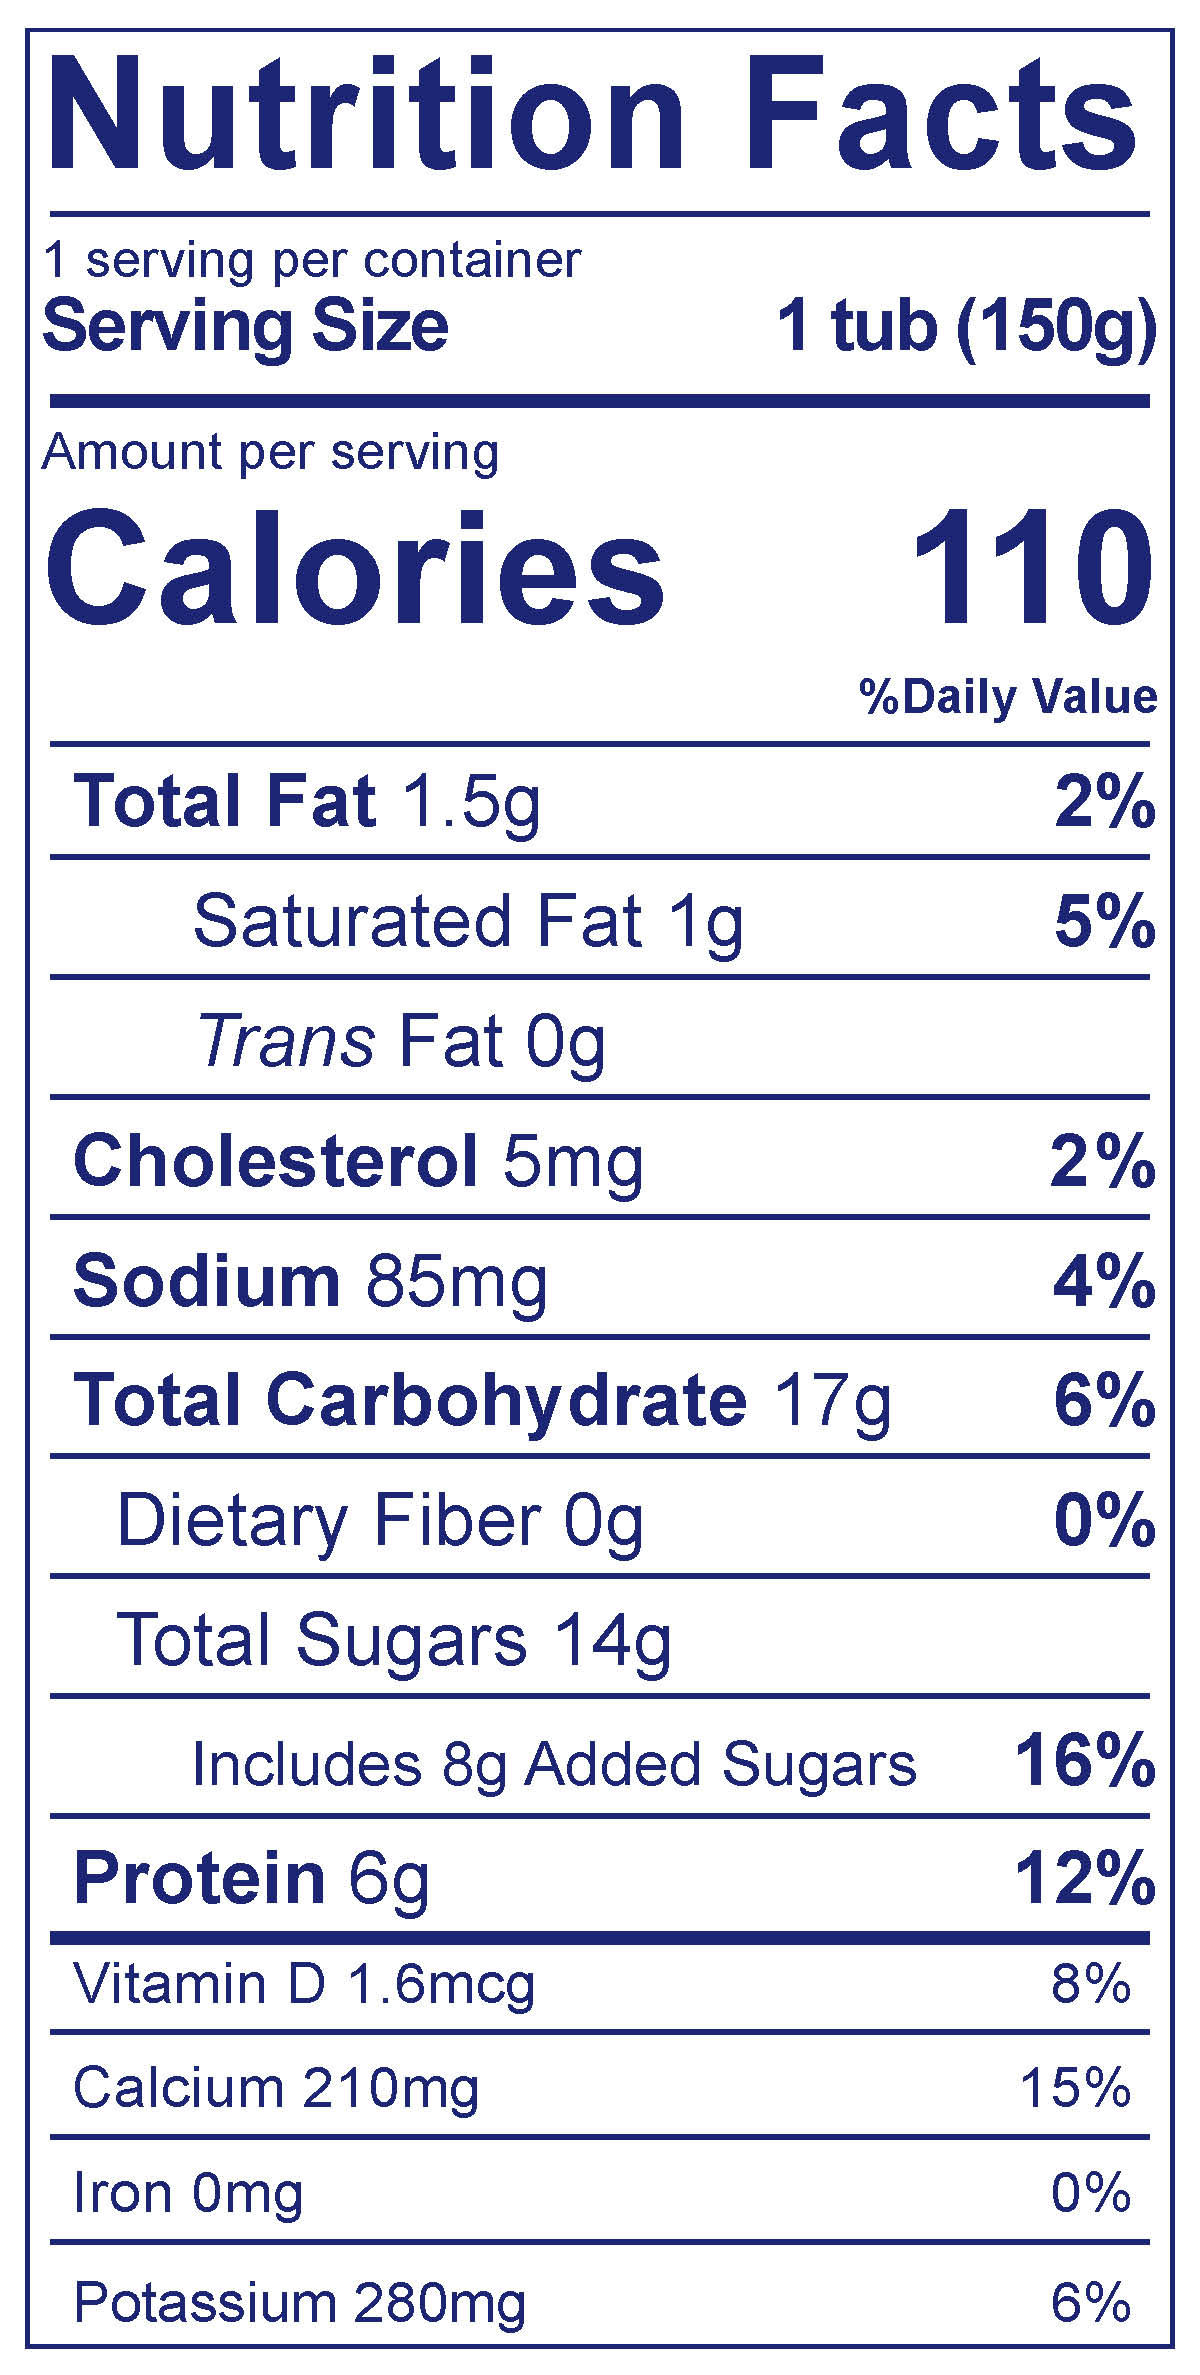 Low Fat Smooth & Creamy Peach - Nutrition Facts